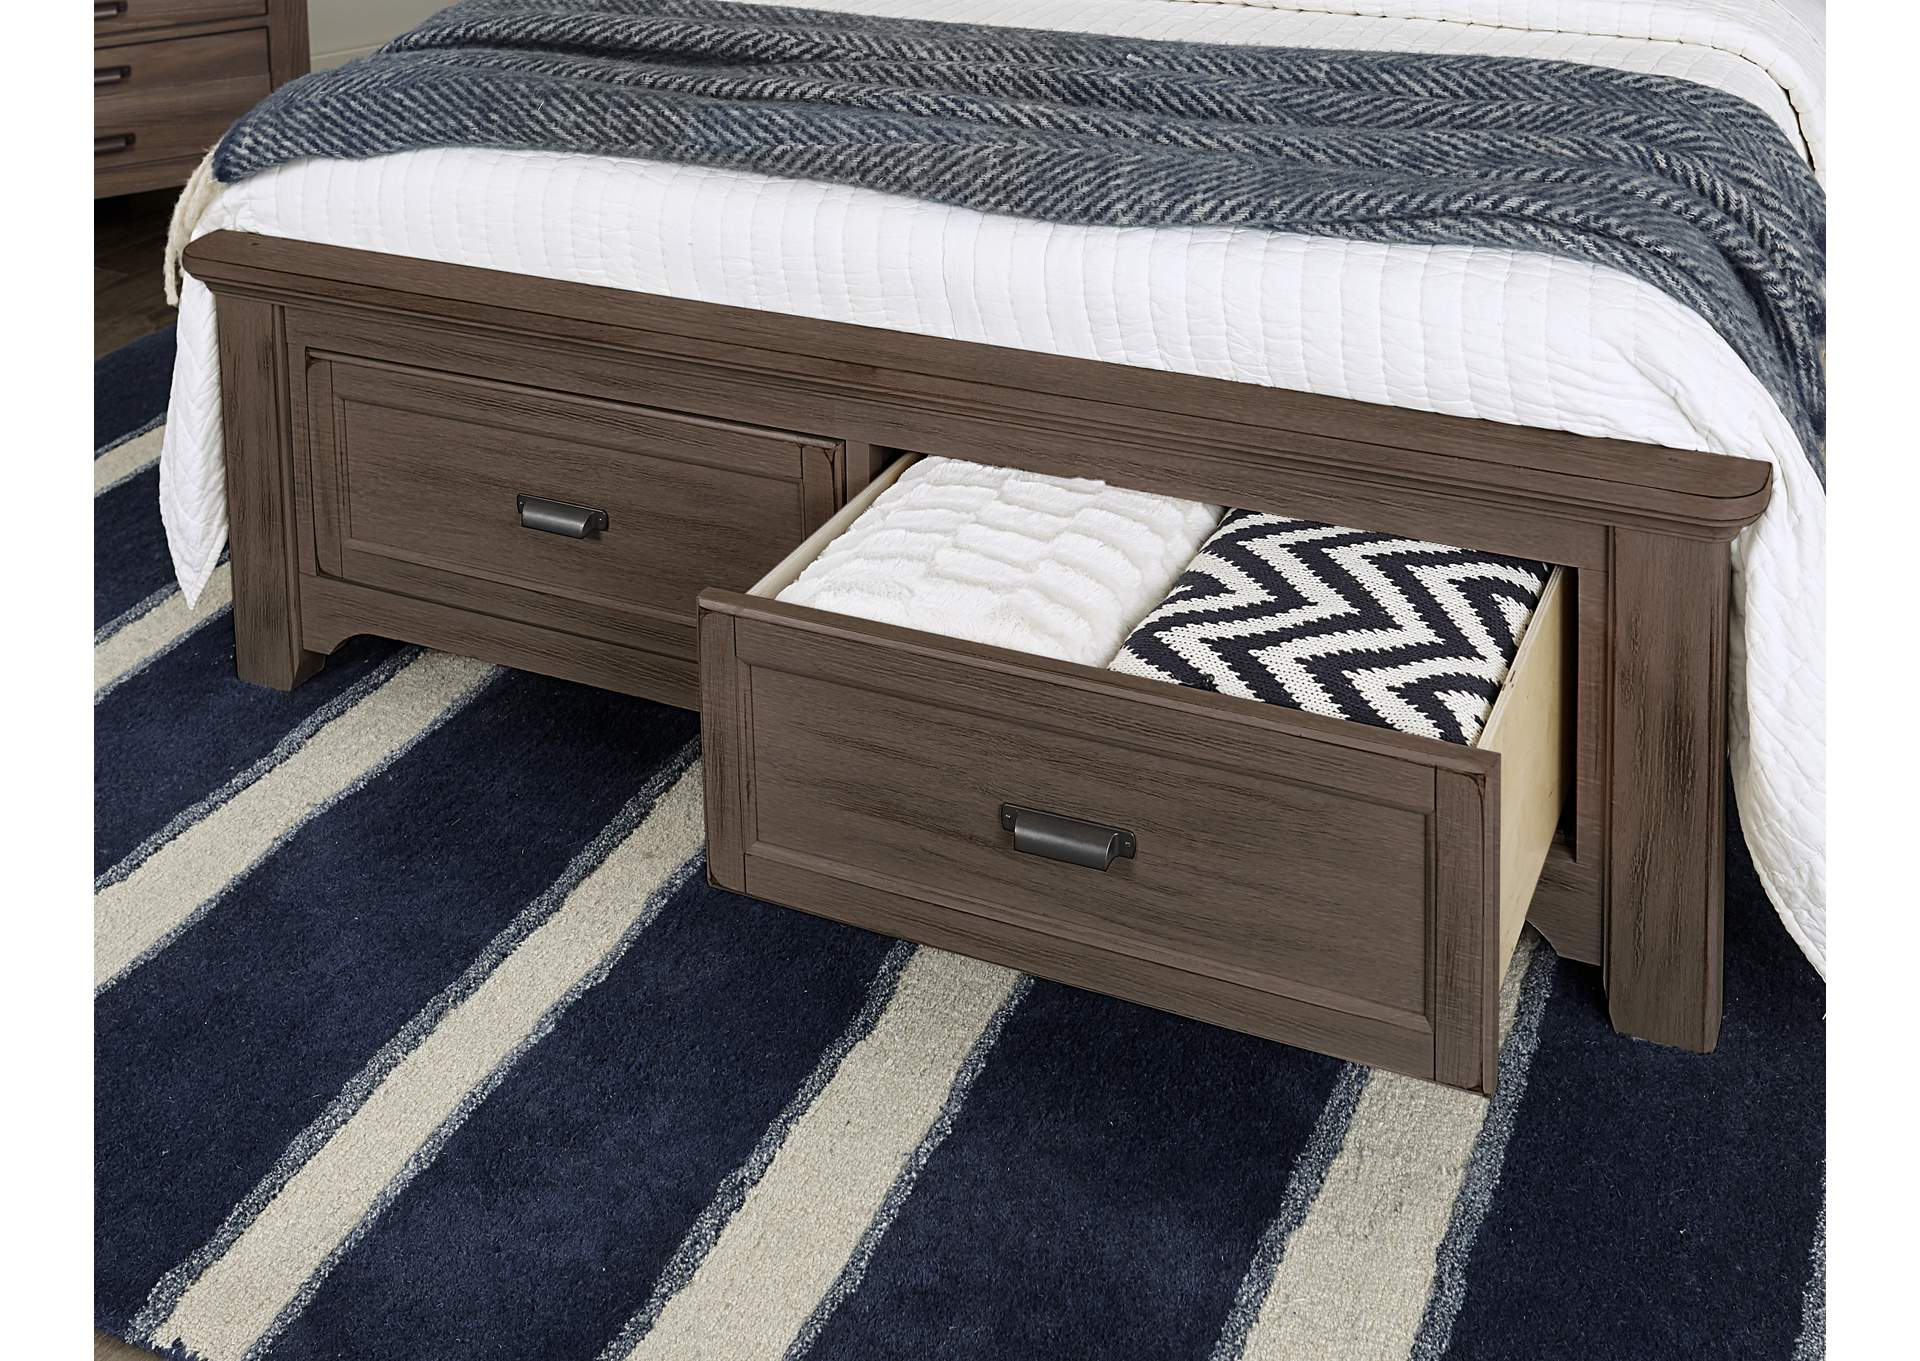 740 - Bungalow Folkstone Full Upholstered Storage Bed,Vaughan-Bassett